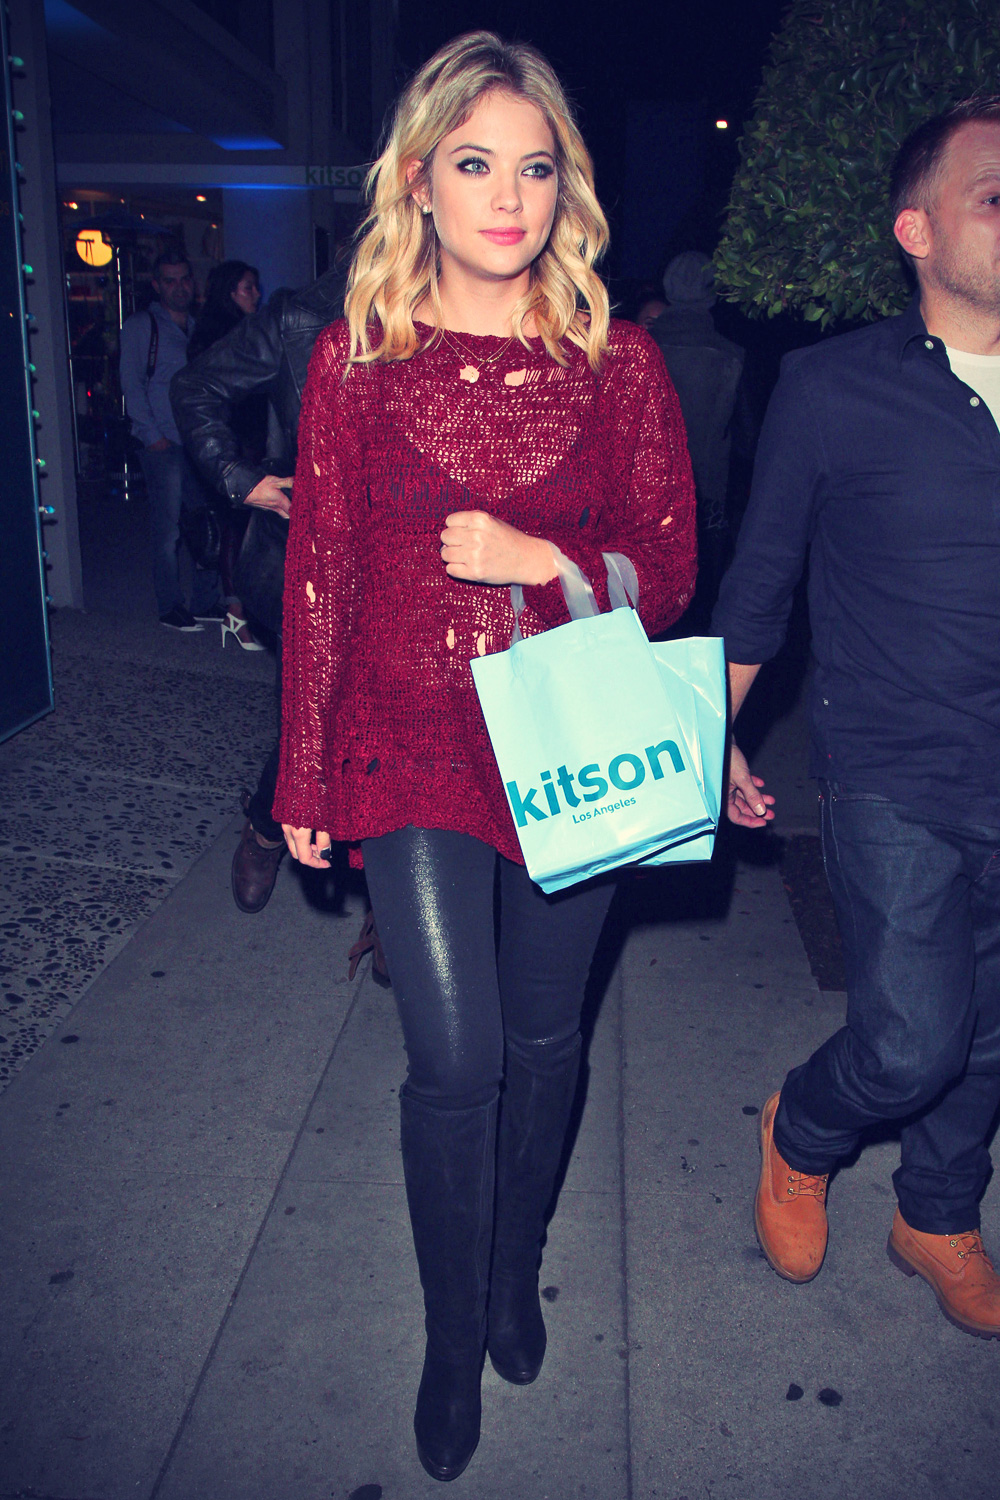 Ashley Benson leaving an event at Kitson